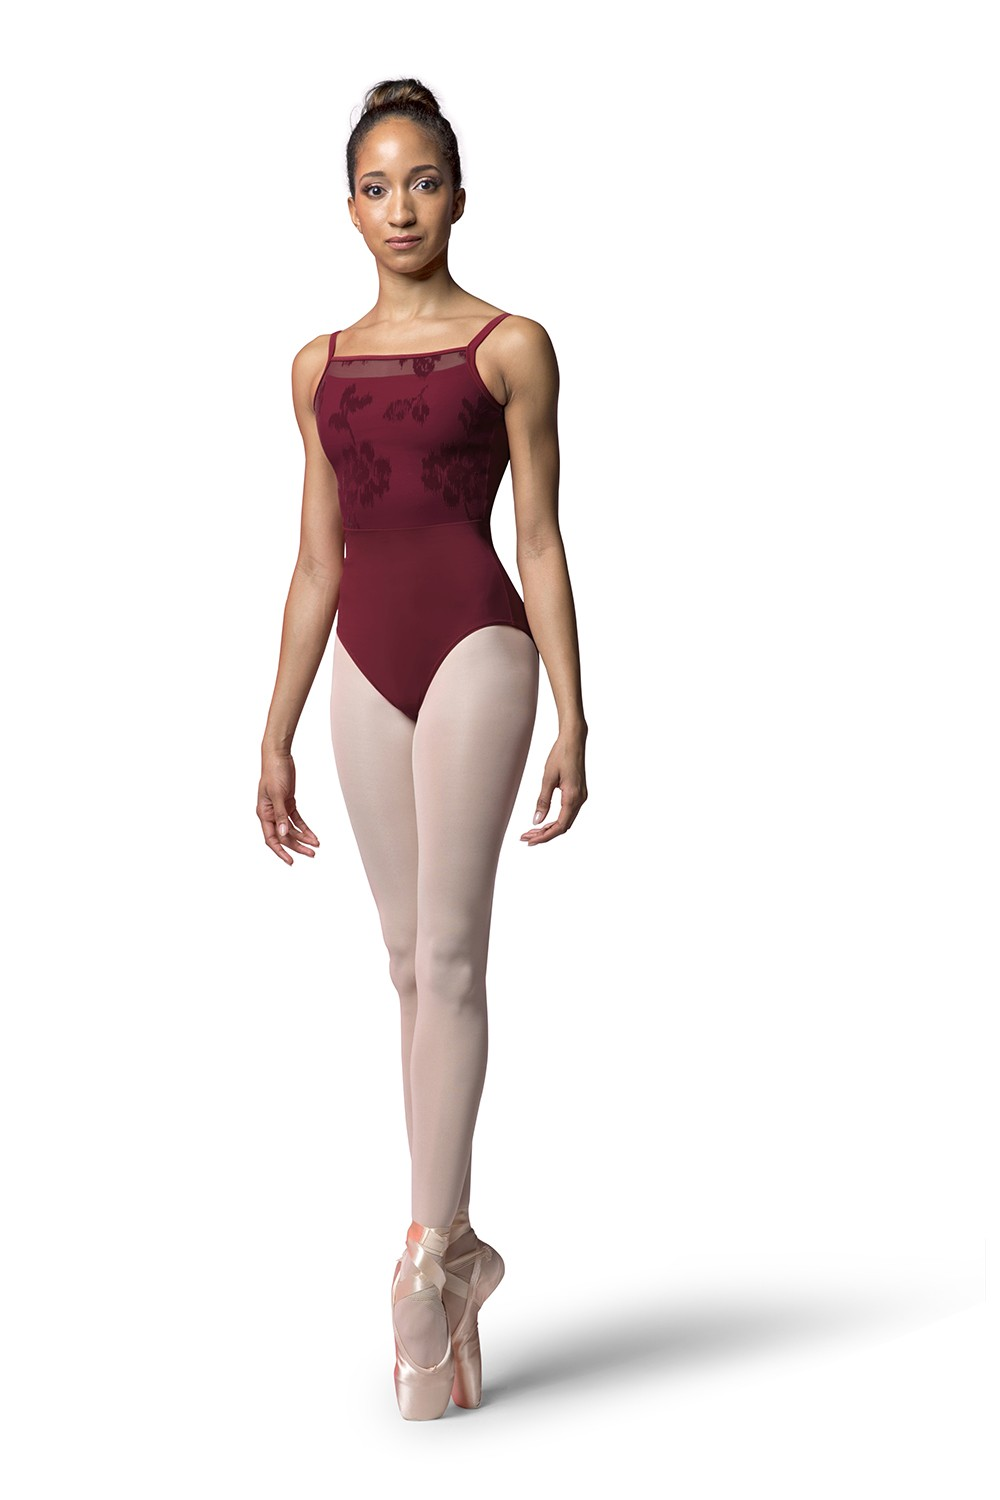 a66de0ad9 Women s Camisole Leotards - BLOCH® US Store